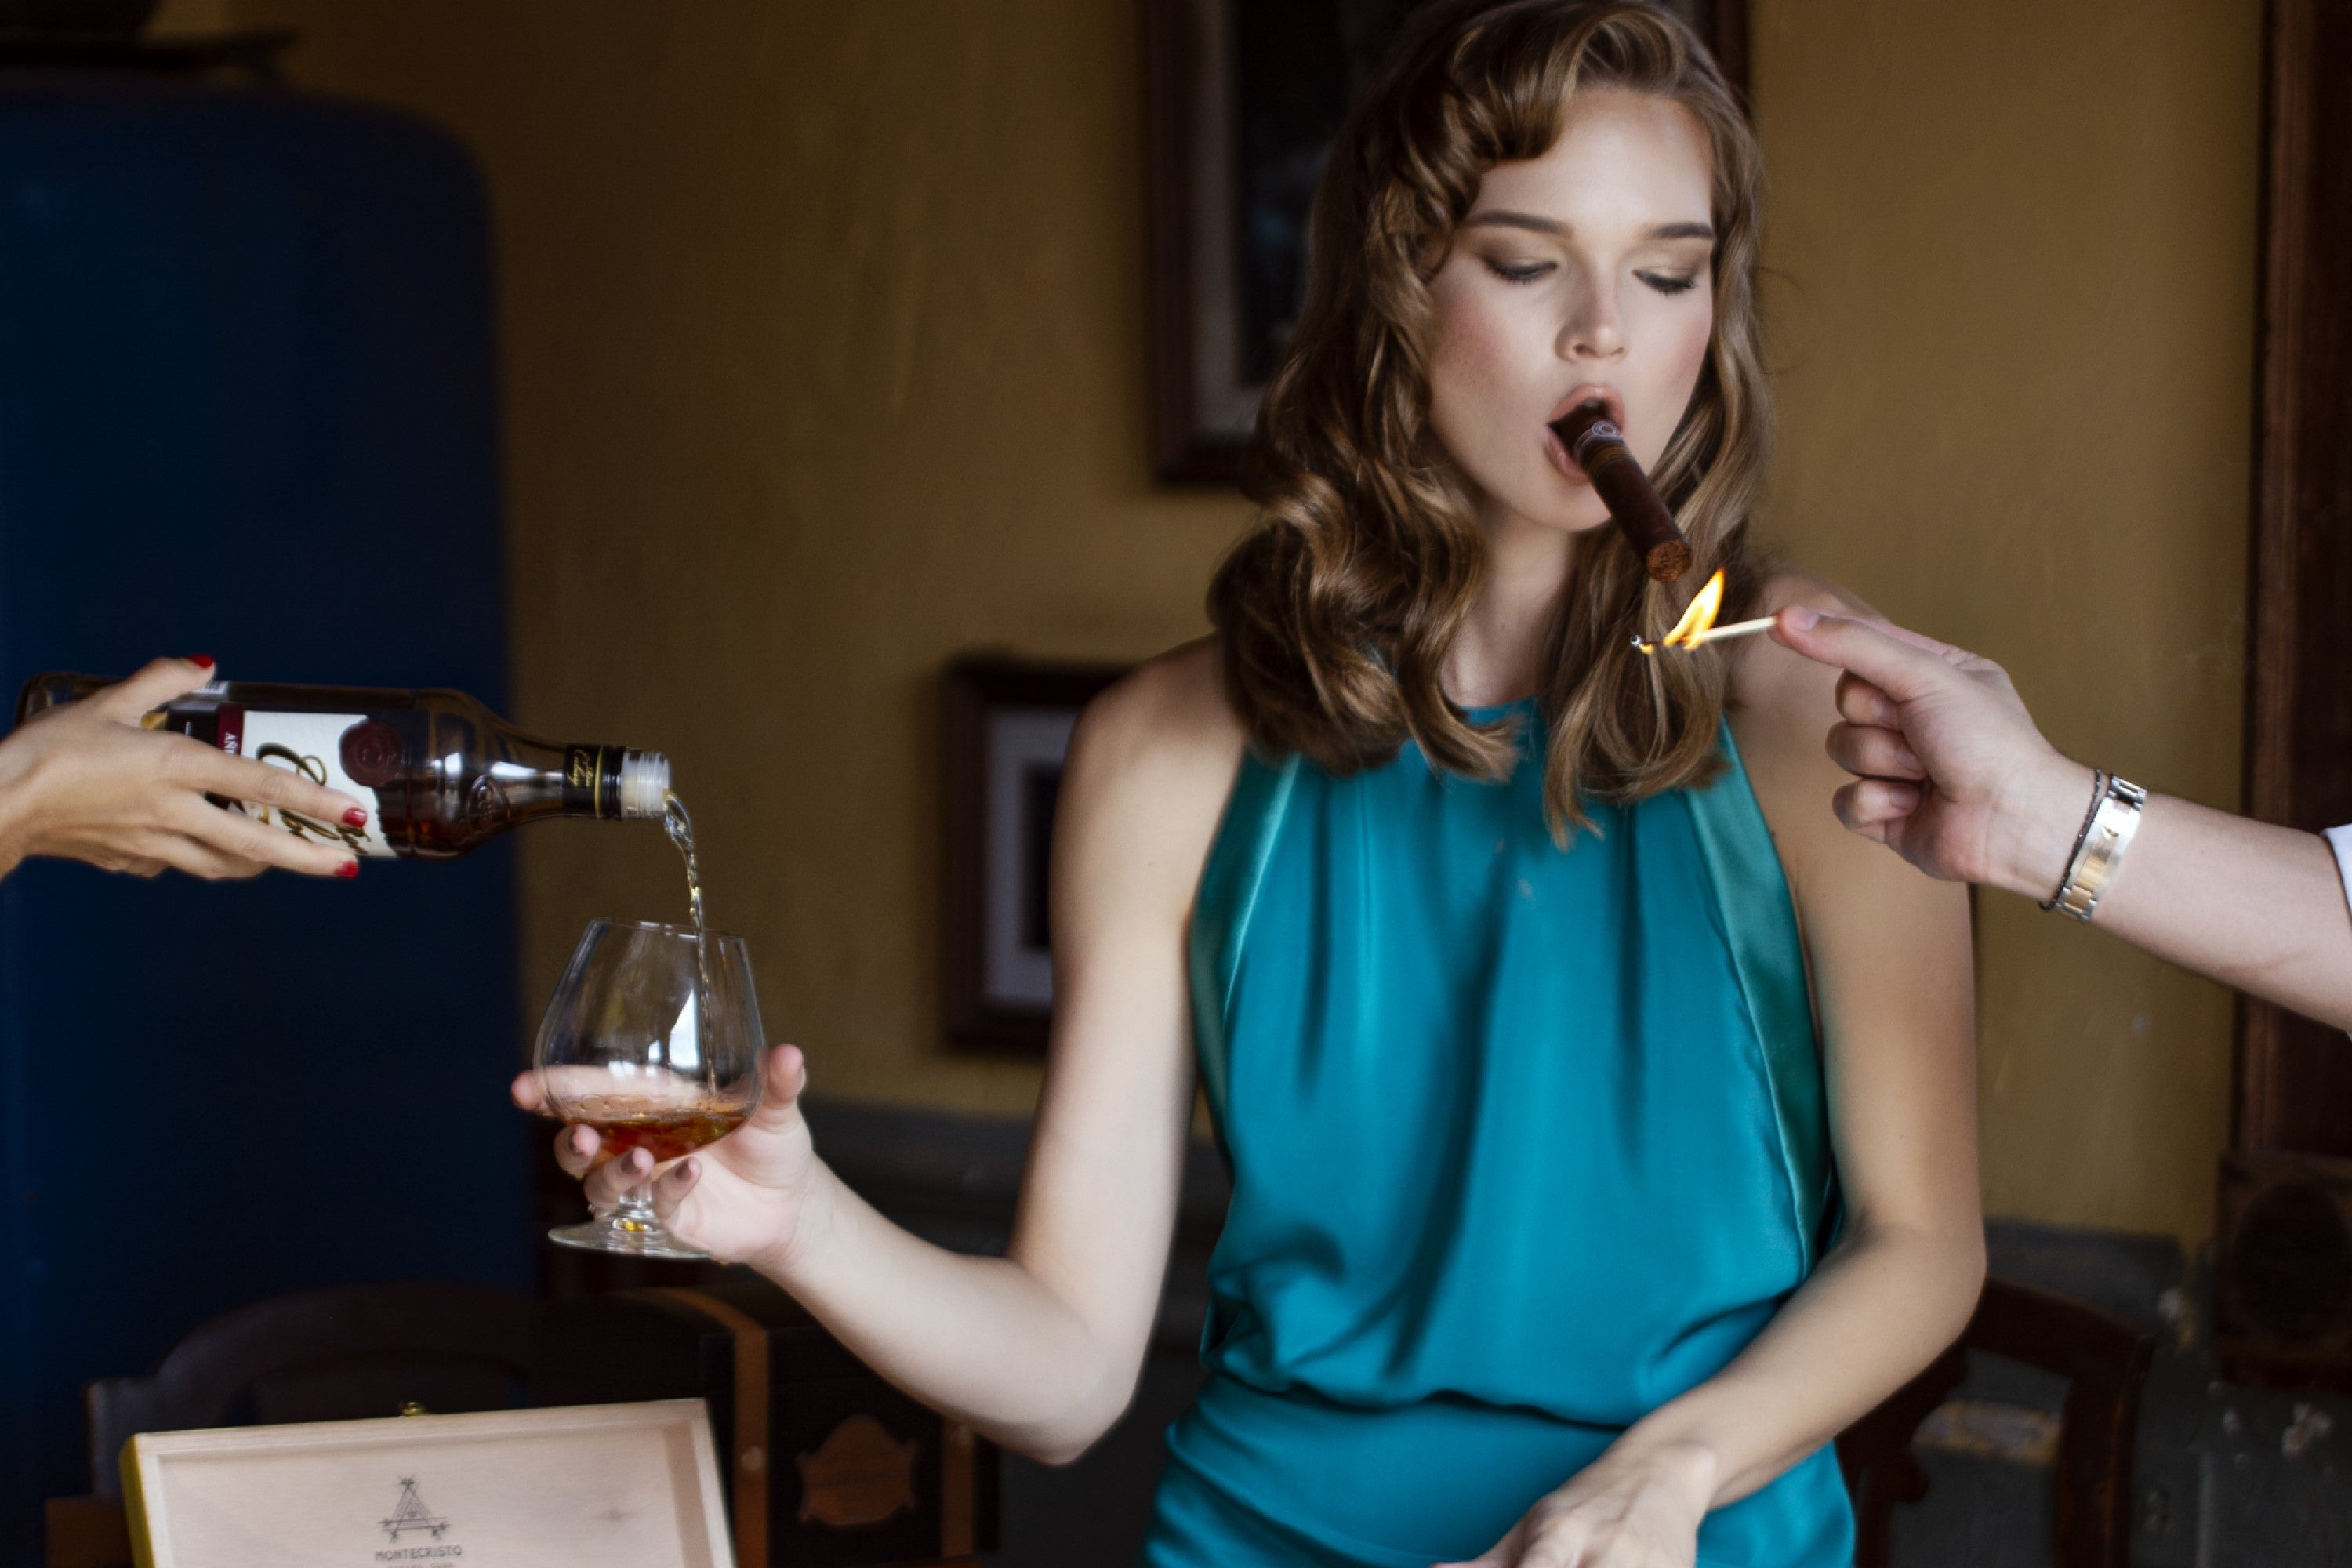 Pair a rare cigar with an excellent beverage for a celebration